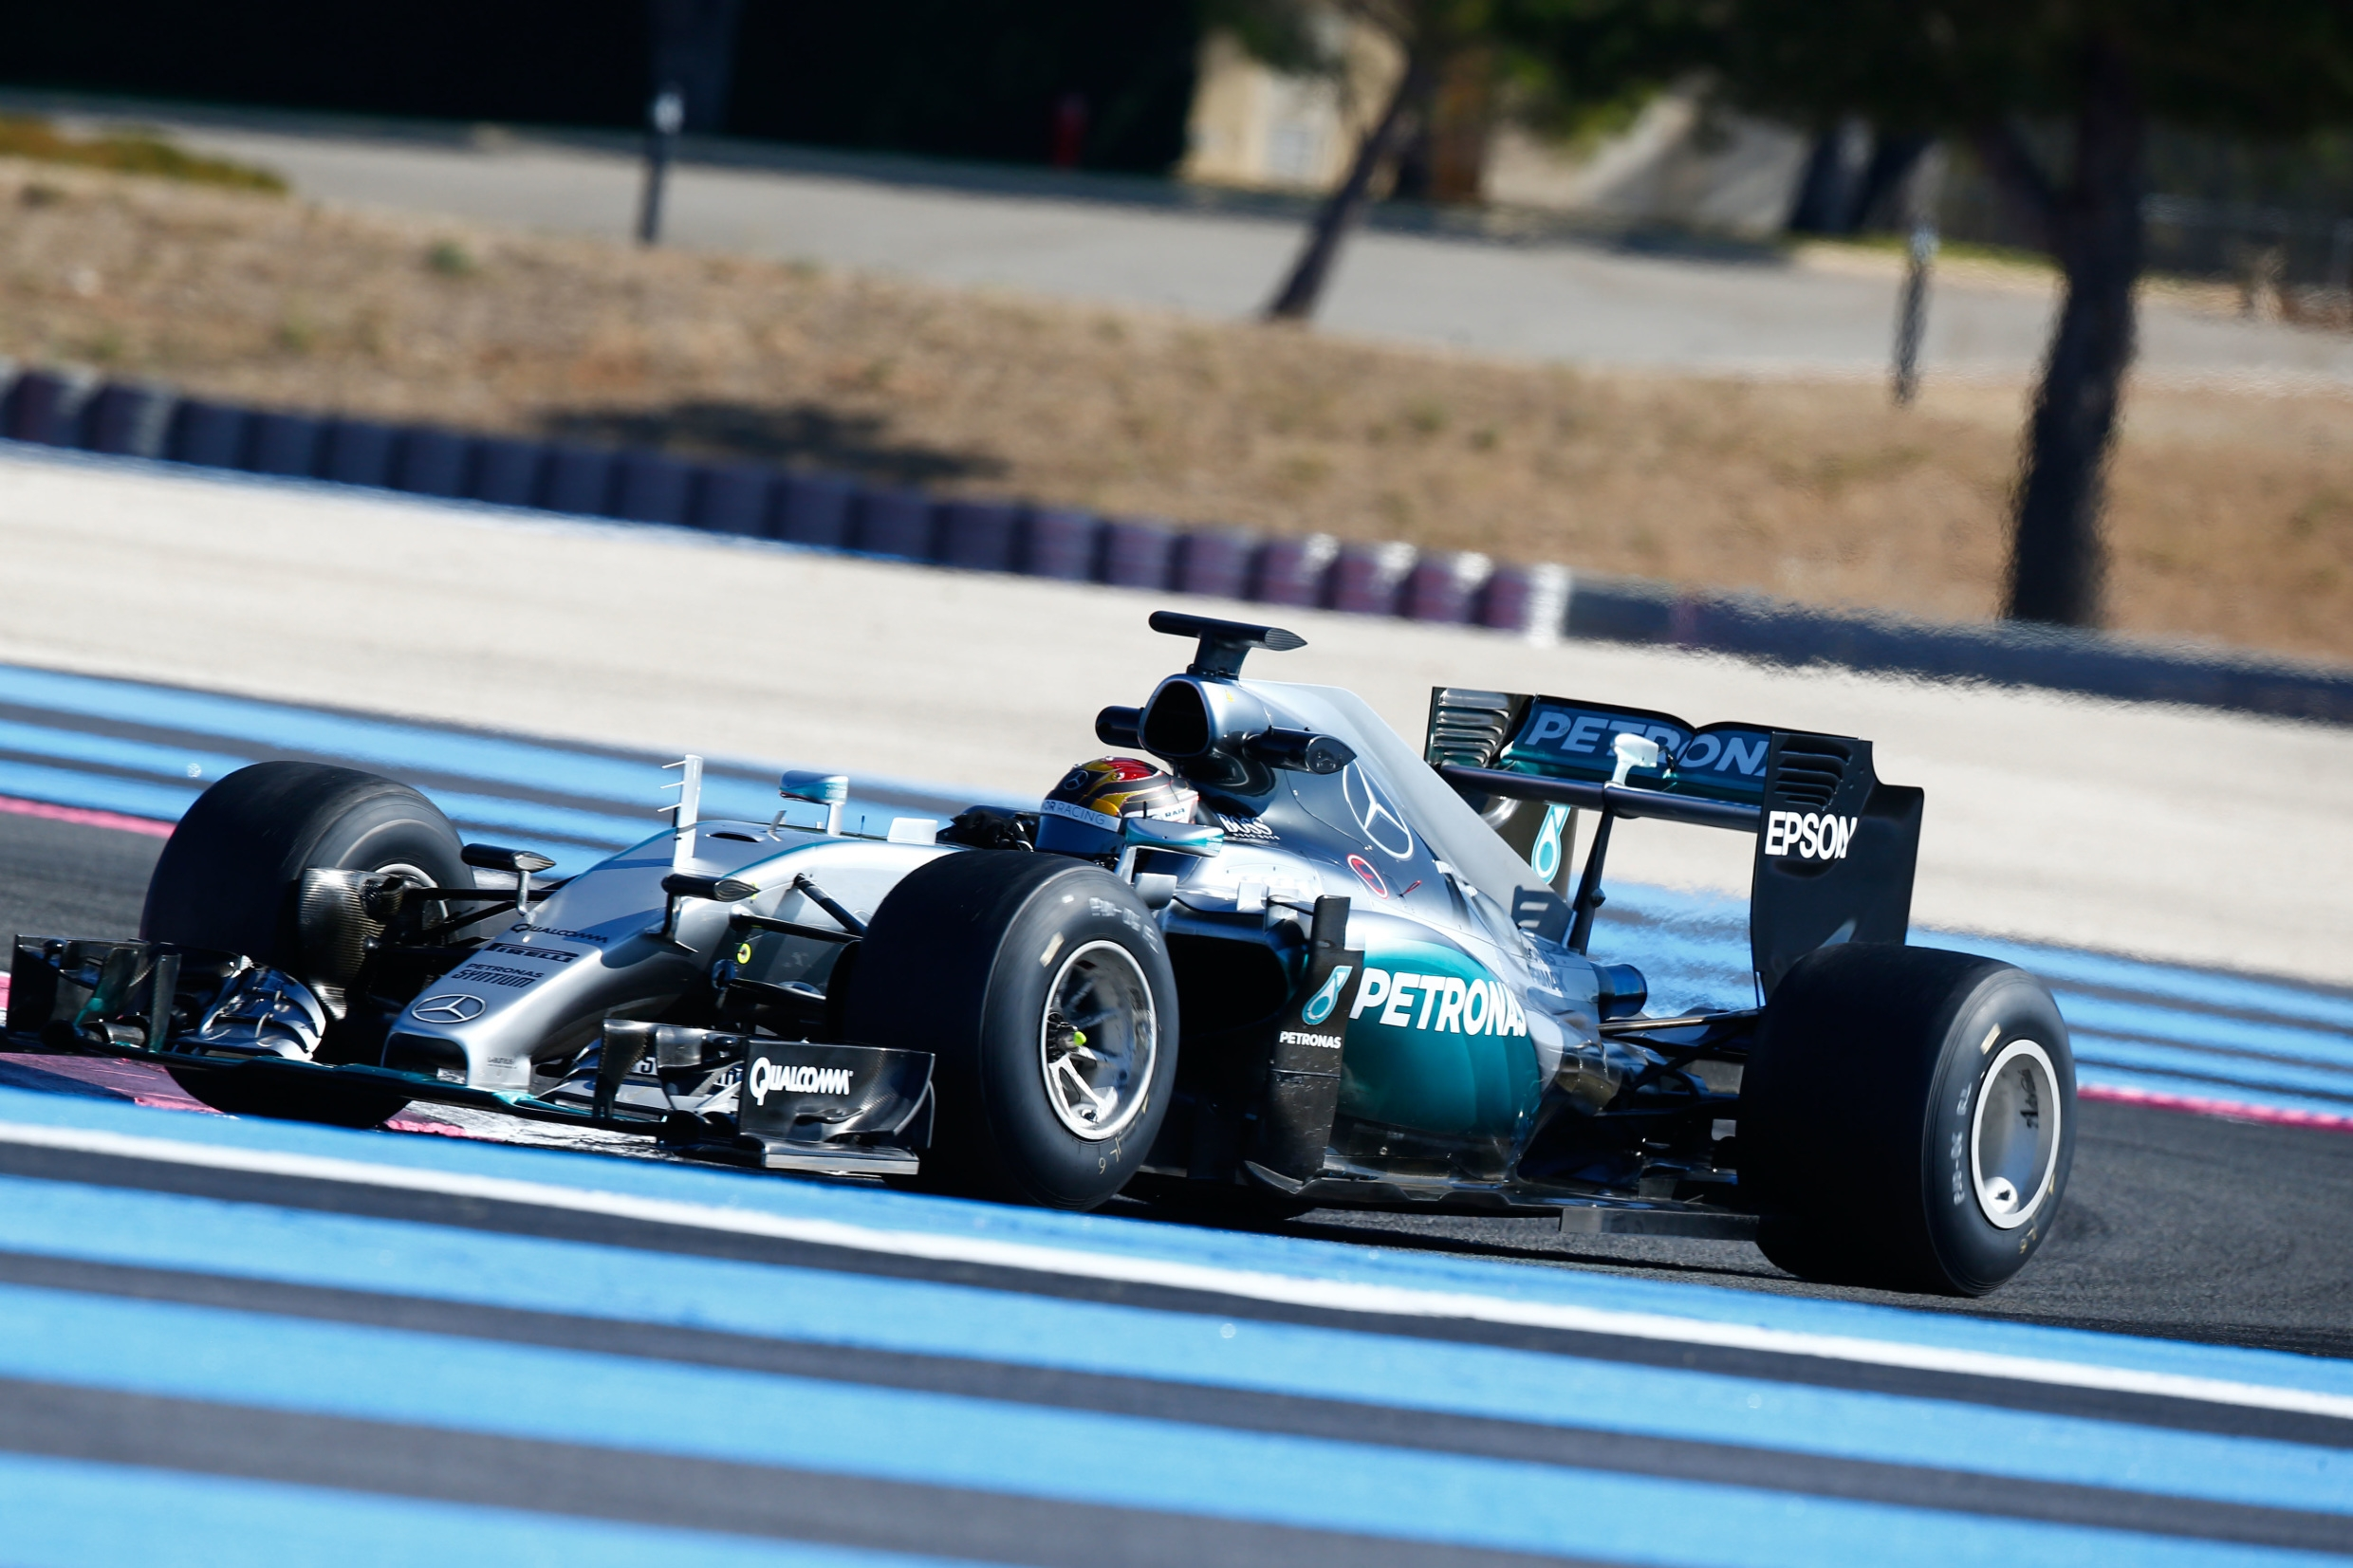 Mercedes engine upgrade feels 'clean and fresh'